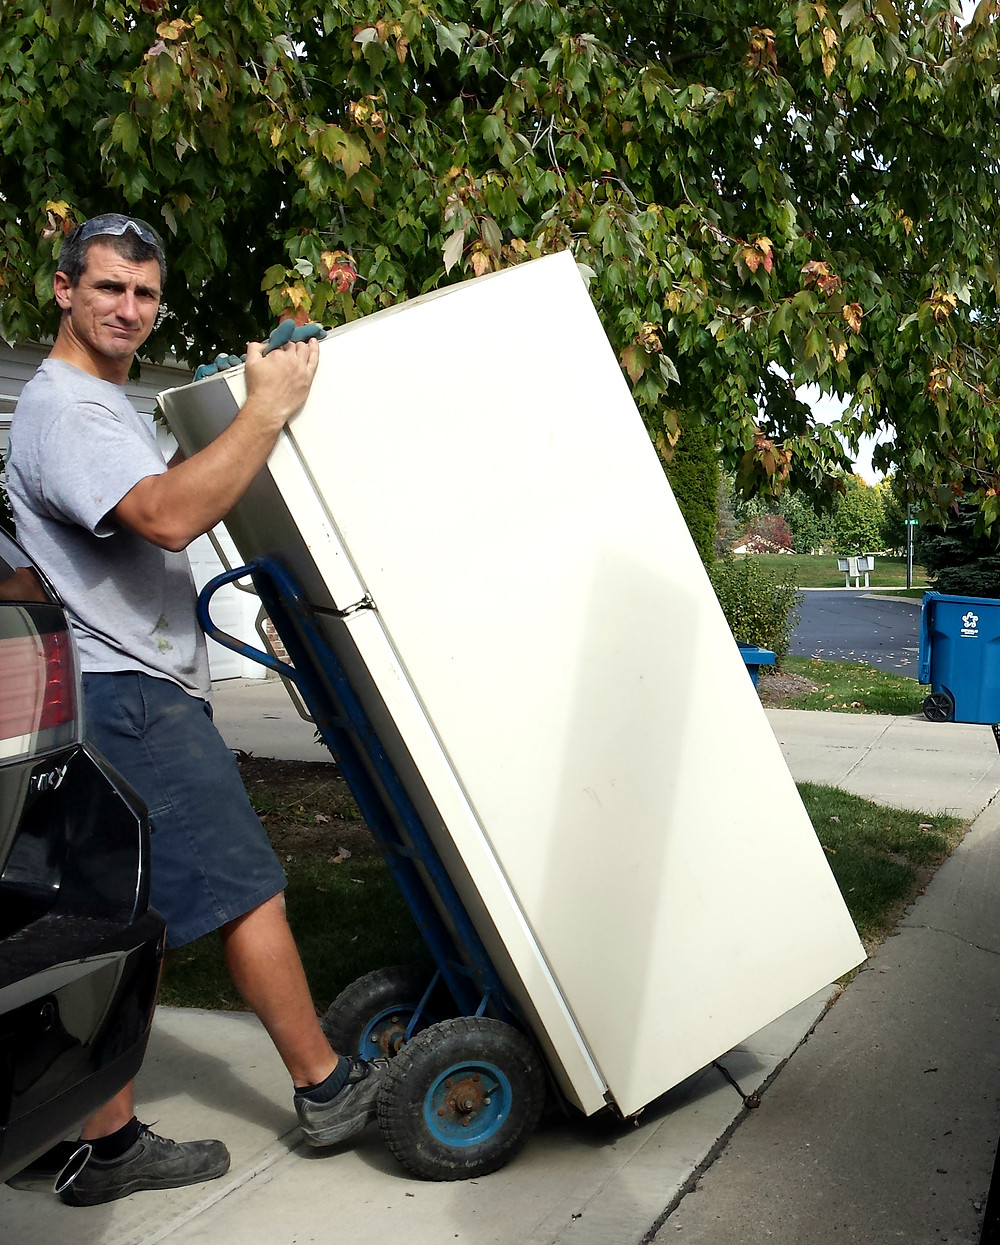 Appliance Removal Indianapolis, Remove Appliances Indianapolis, Appliance Recycling Indianapolis, Refrigerator Removal Indianapolis, Junk Removal Indianapolis, Junk Pickup Indianapolis, Appliance Hauling Indianapolis, Schott Services LLC Indianapolis